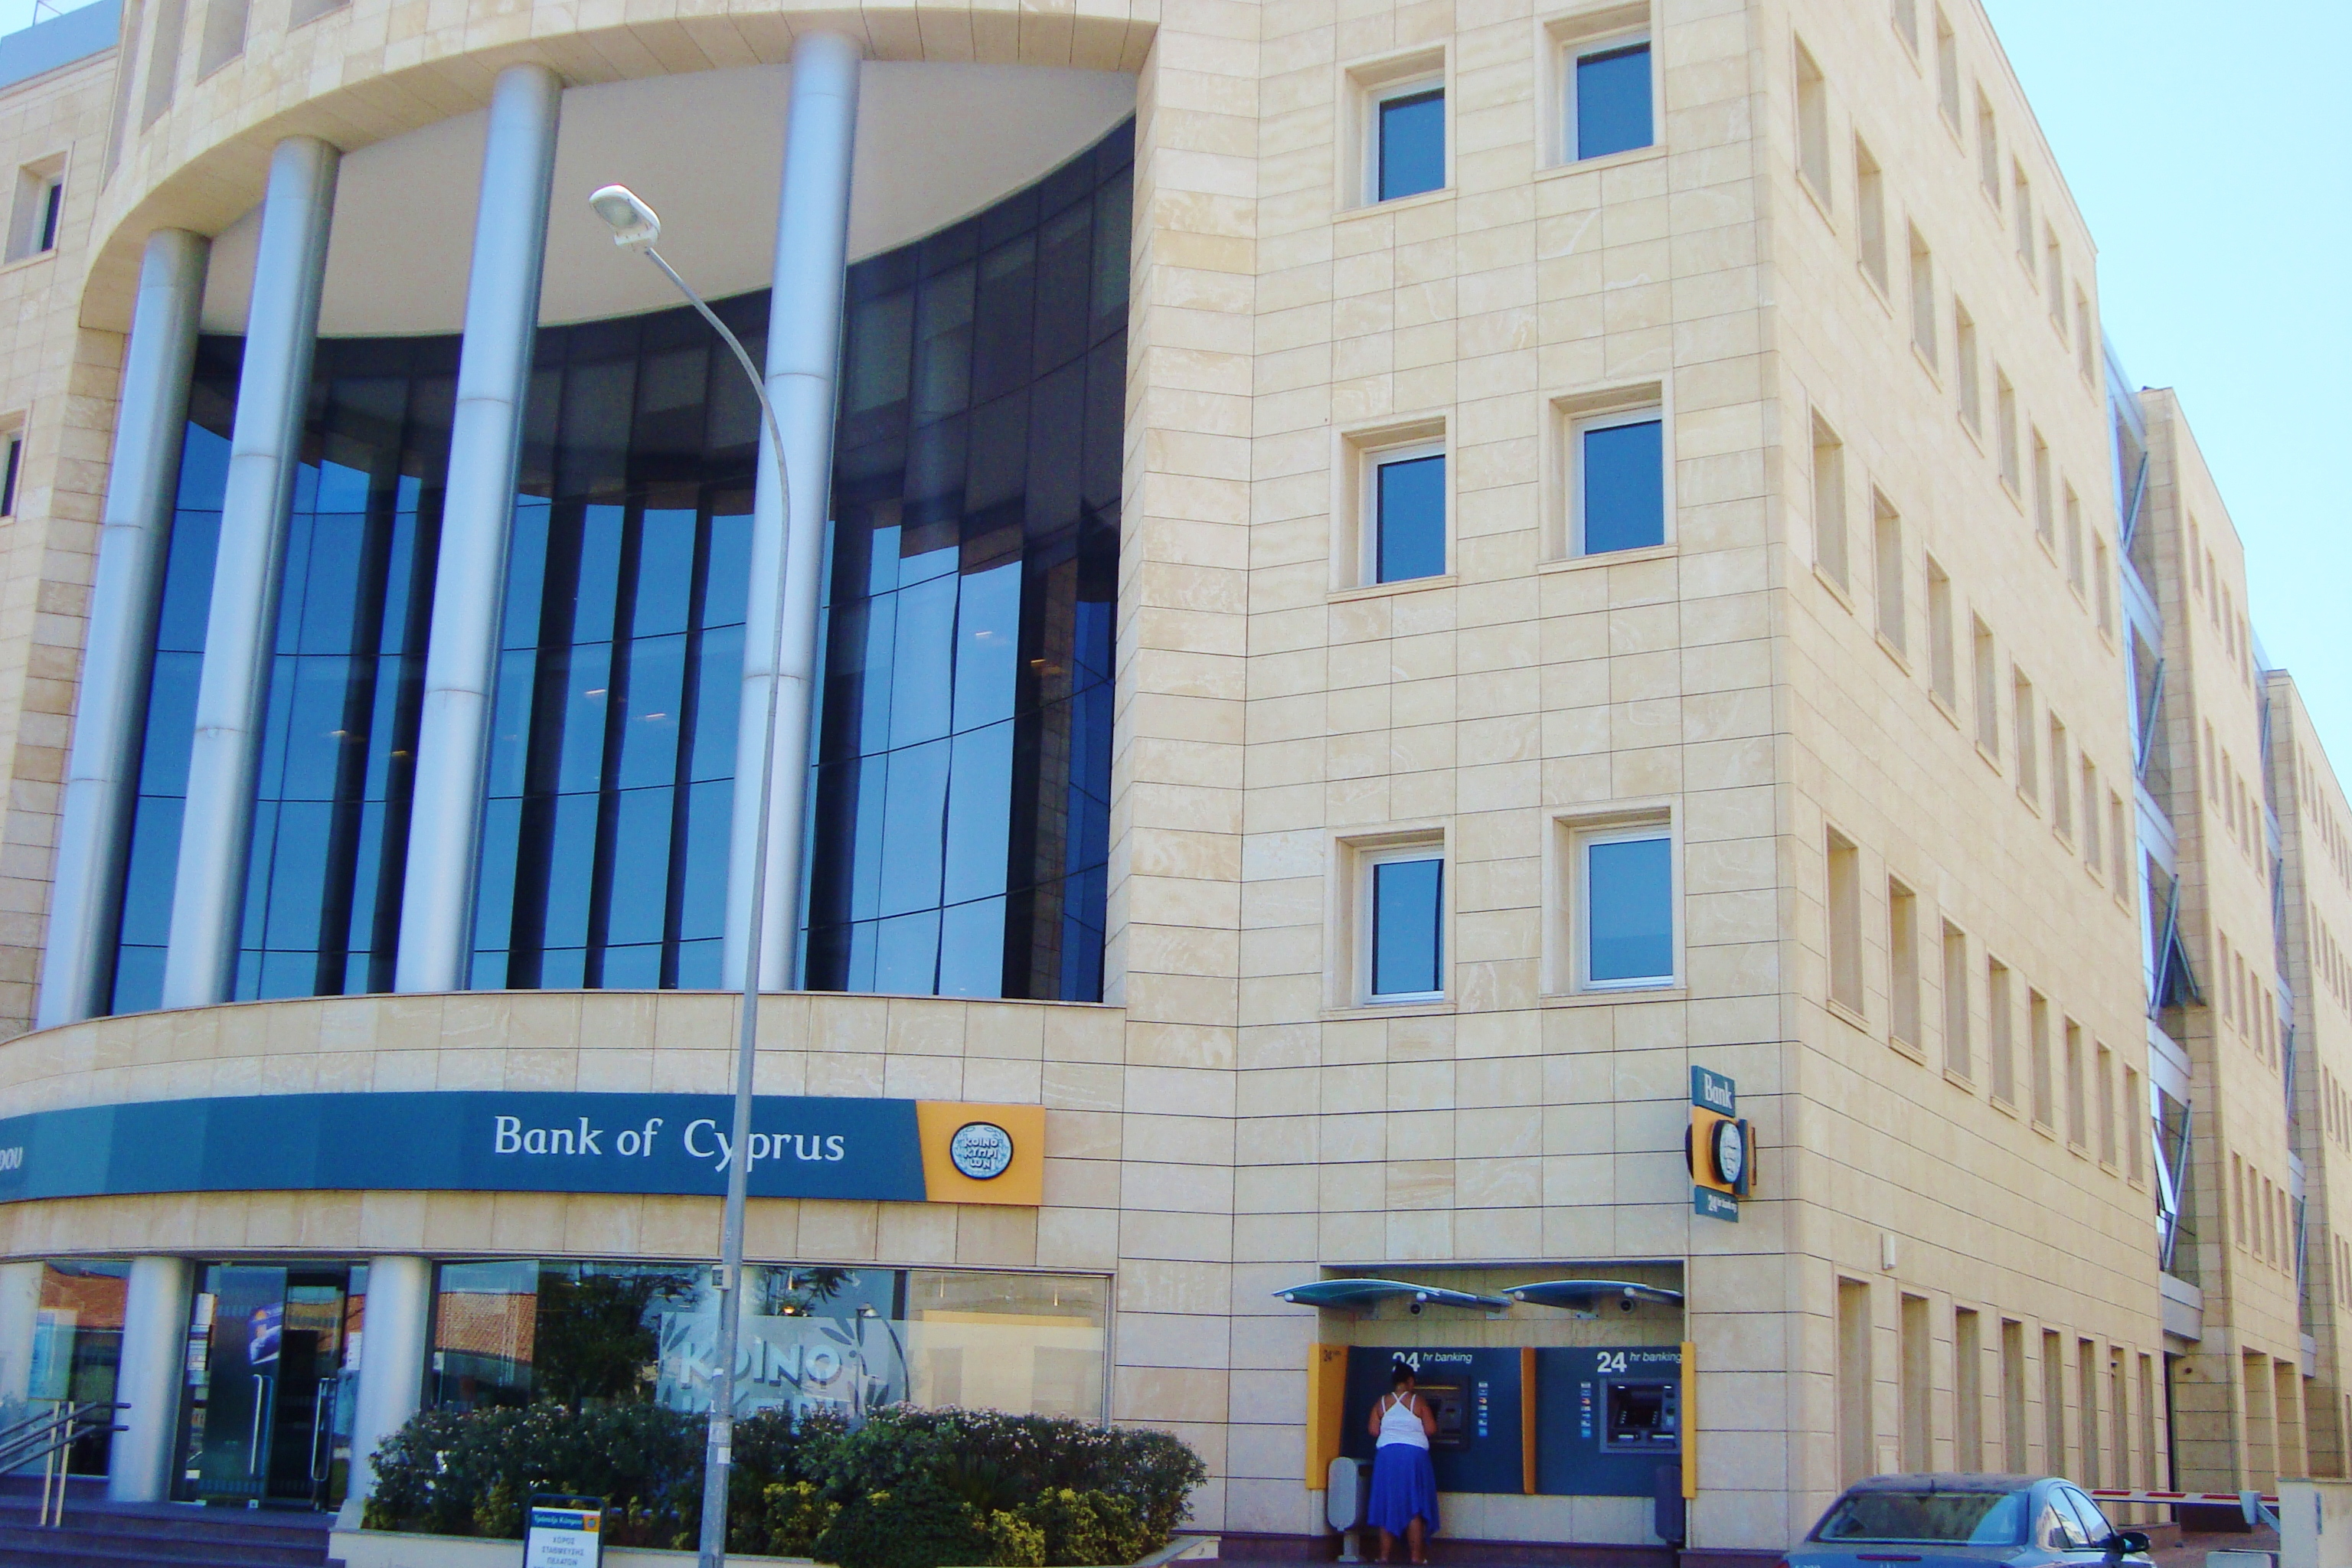 New shareholder structure for the Bank of Cyprus